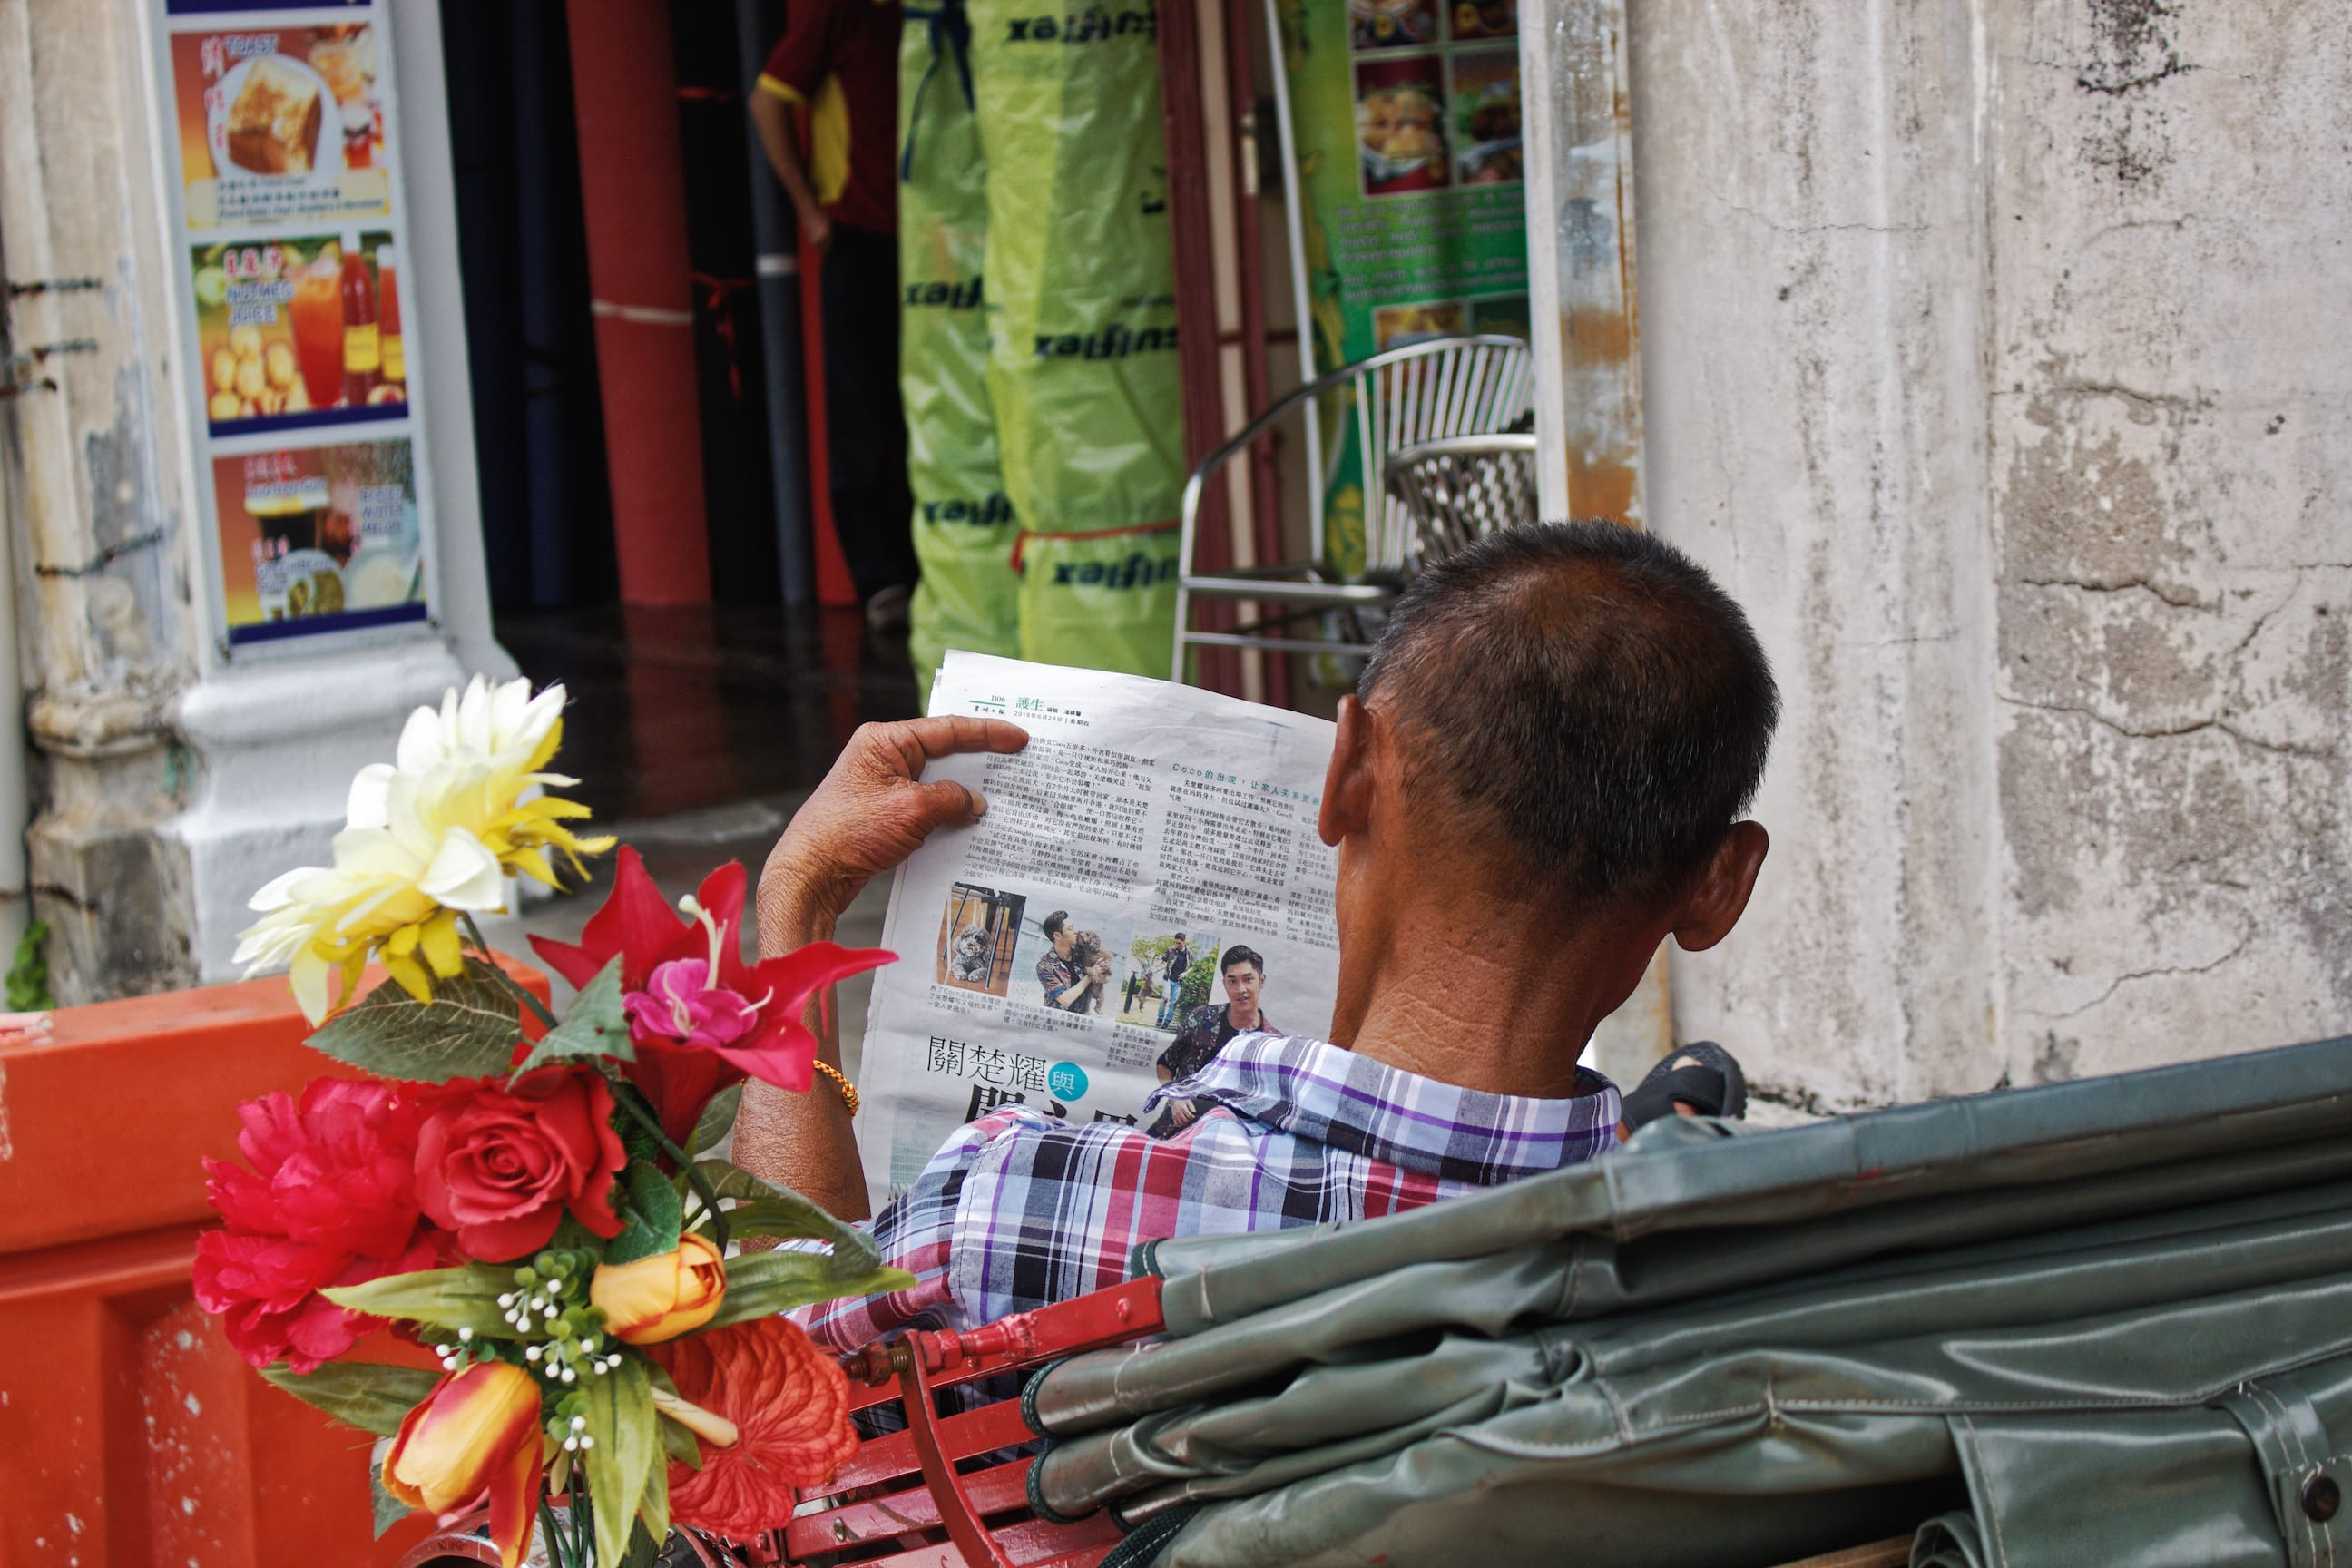 A Man Reading Newspaper